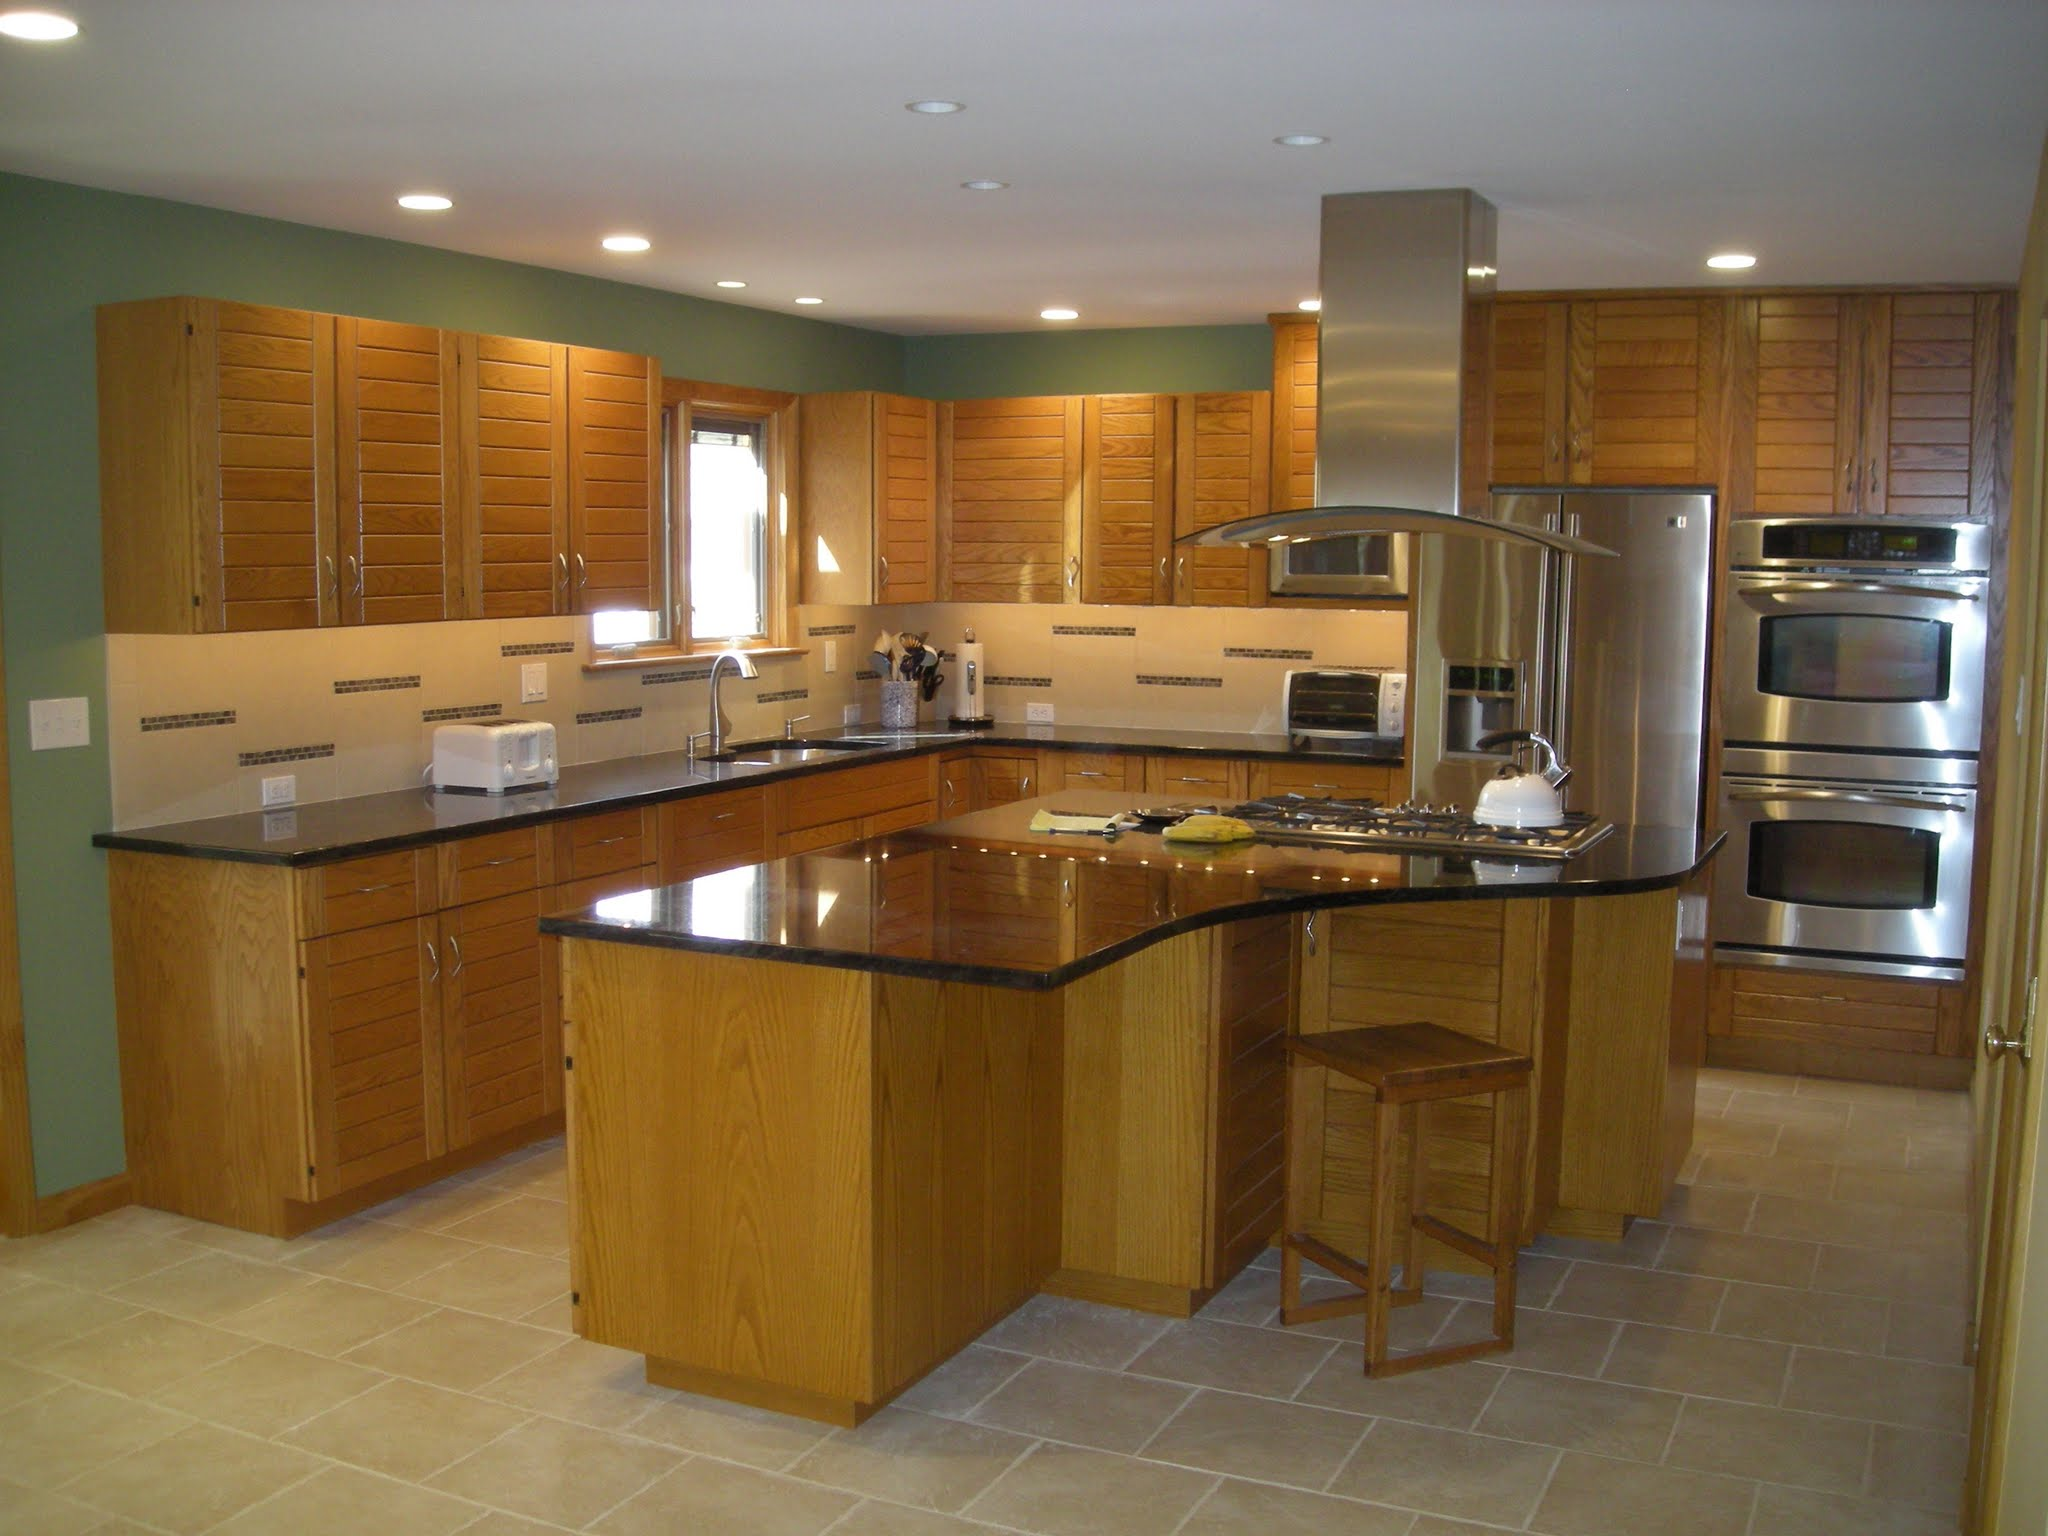 Picasa - Kitchen renovation matching new cabinets to existing, new granite count